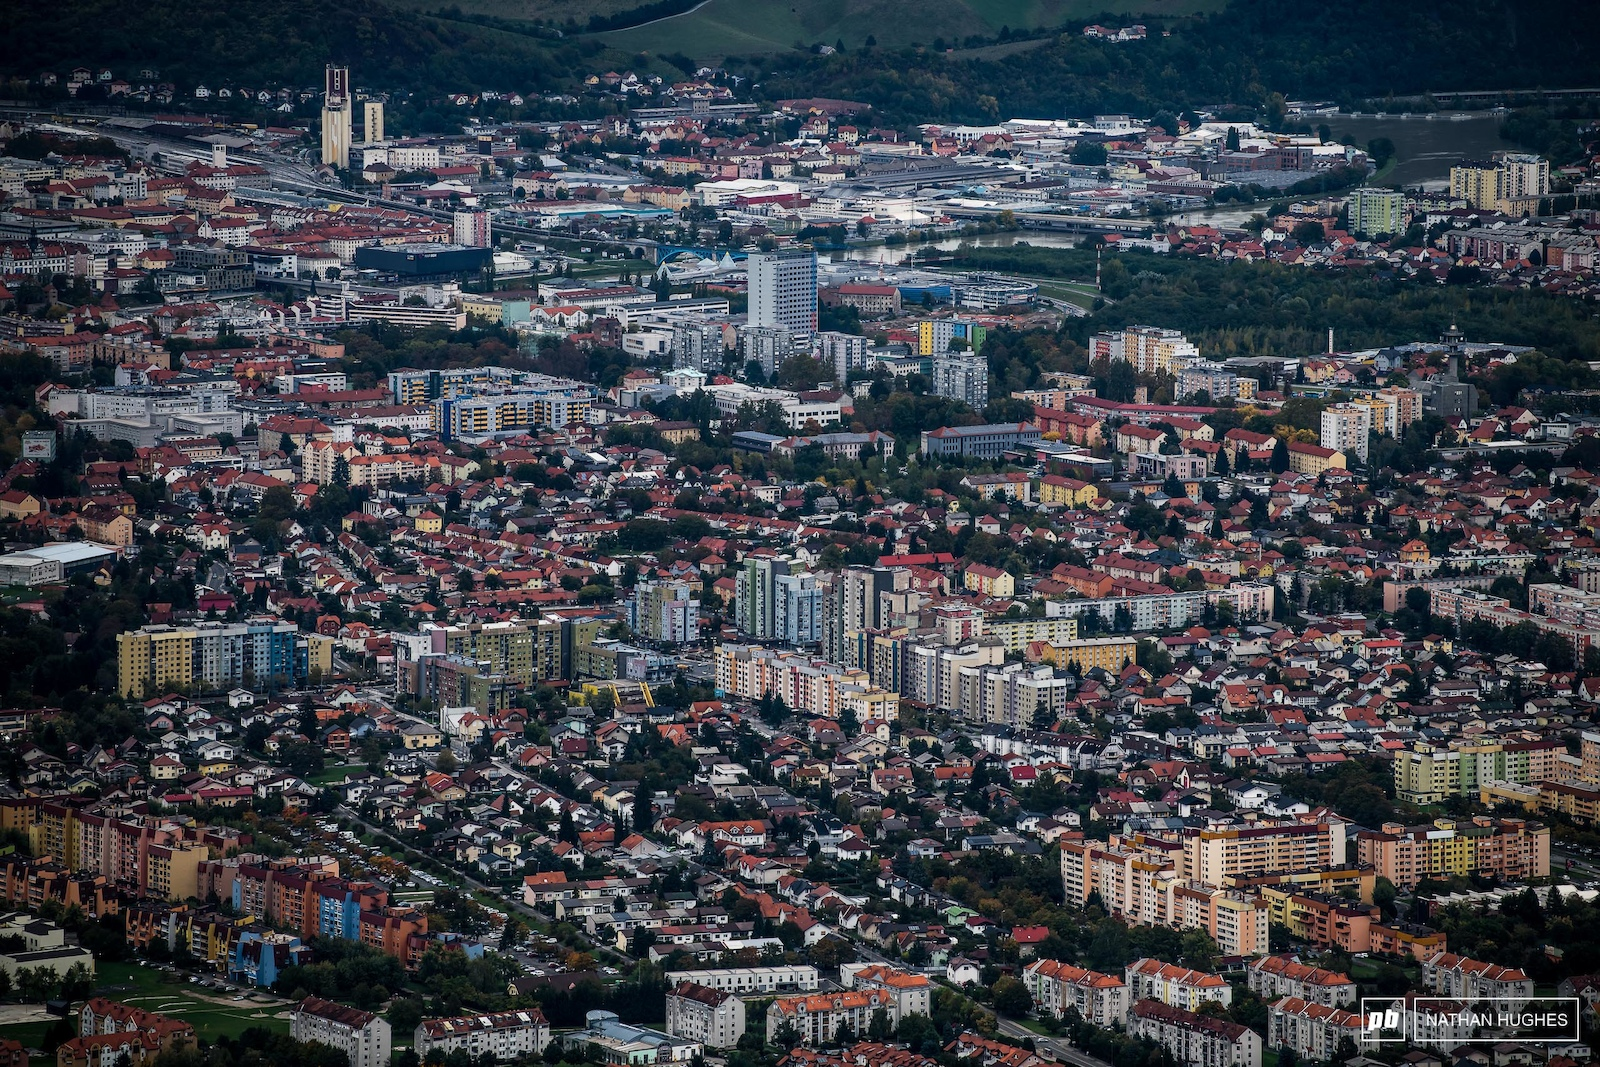 The city of Maribor sprawls out below the forested mountainside the hides the World Cup track.